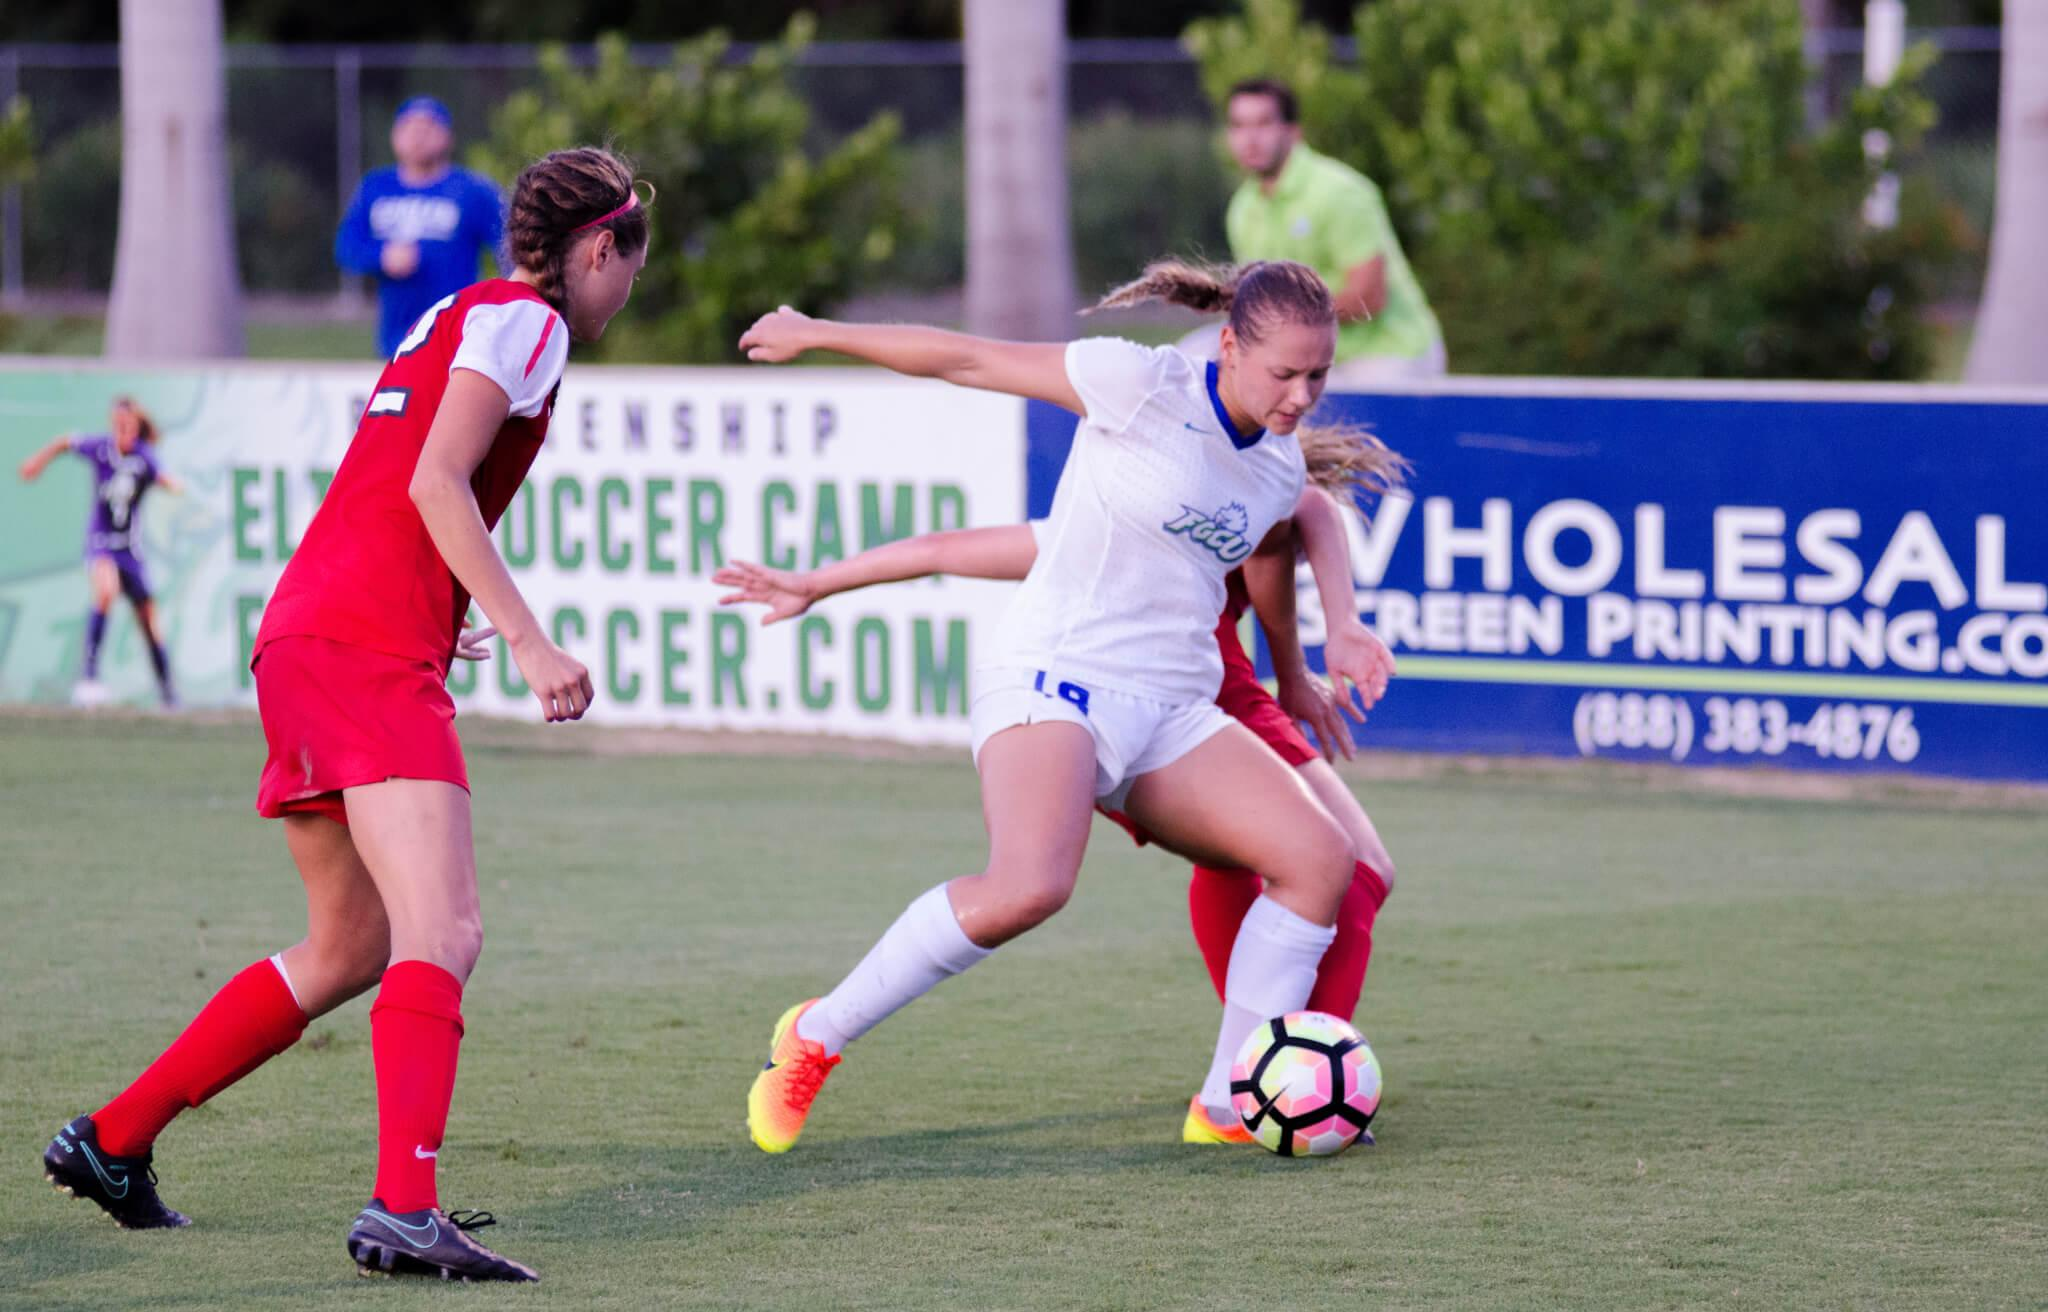 FGCU women's soccer suffers 1-0 loss in double overtime against Ohio State in home opener